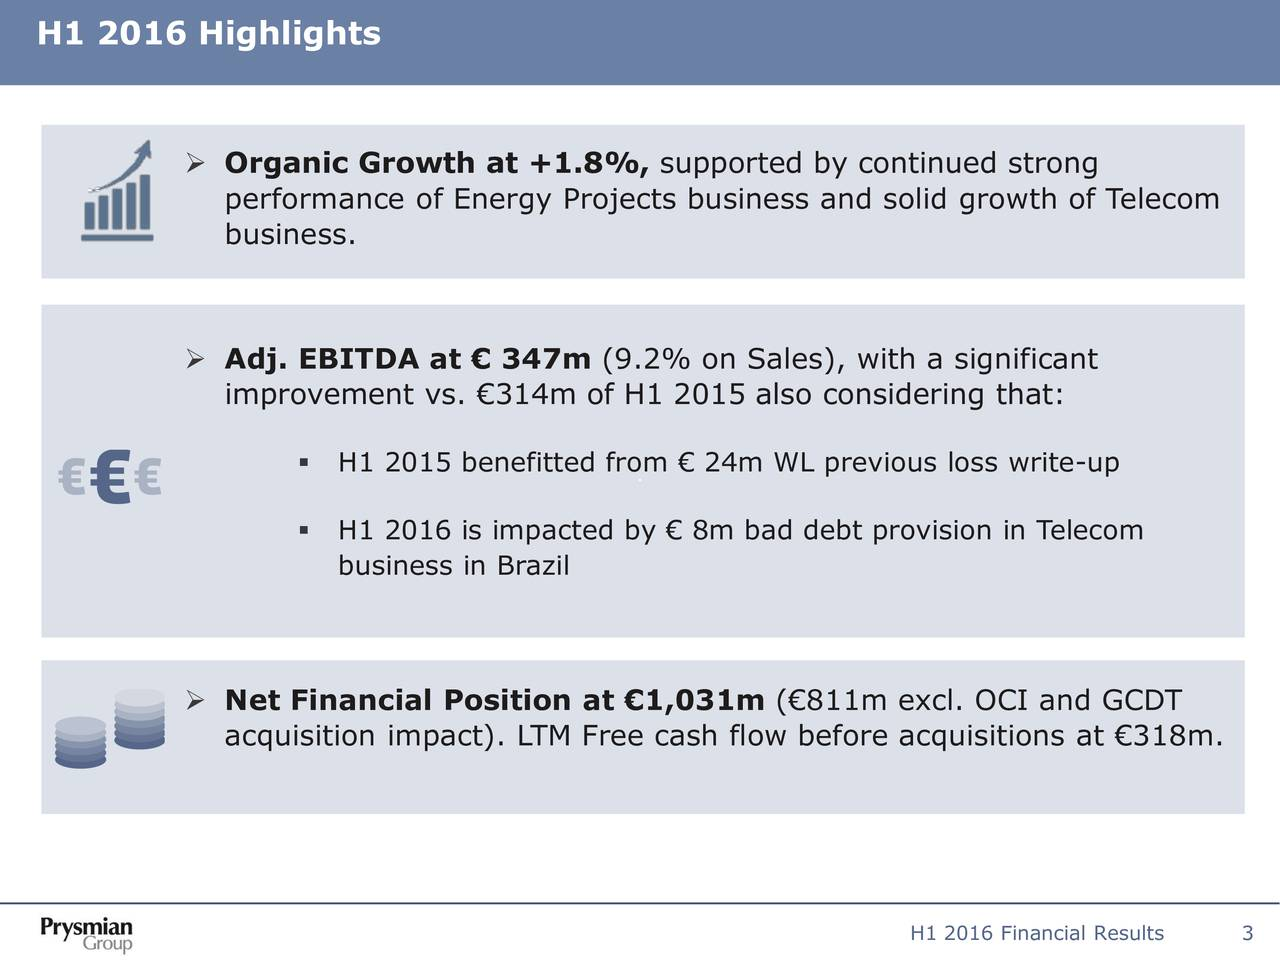 Organic Growth at +1.8%, supported by continued strong performance of Energy Projects business and solid growth of Telecom business. Adj. EBITDA at  347m (9.2% on Sales), with a significant improvement vs. 314m of H1 2015 also considering that: H1 2015 benefitted from  24m WL previous loss write-up H1 2016 is impacted by  8m bad debt provision in Telecom business in Brazil Net Financial Position at 1,031m (811m excl. OCI and GCDT acquisition impact). LTM Free cash flow before acquisitions at 318m. H1 2016 Financial Results3